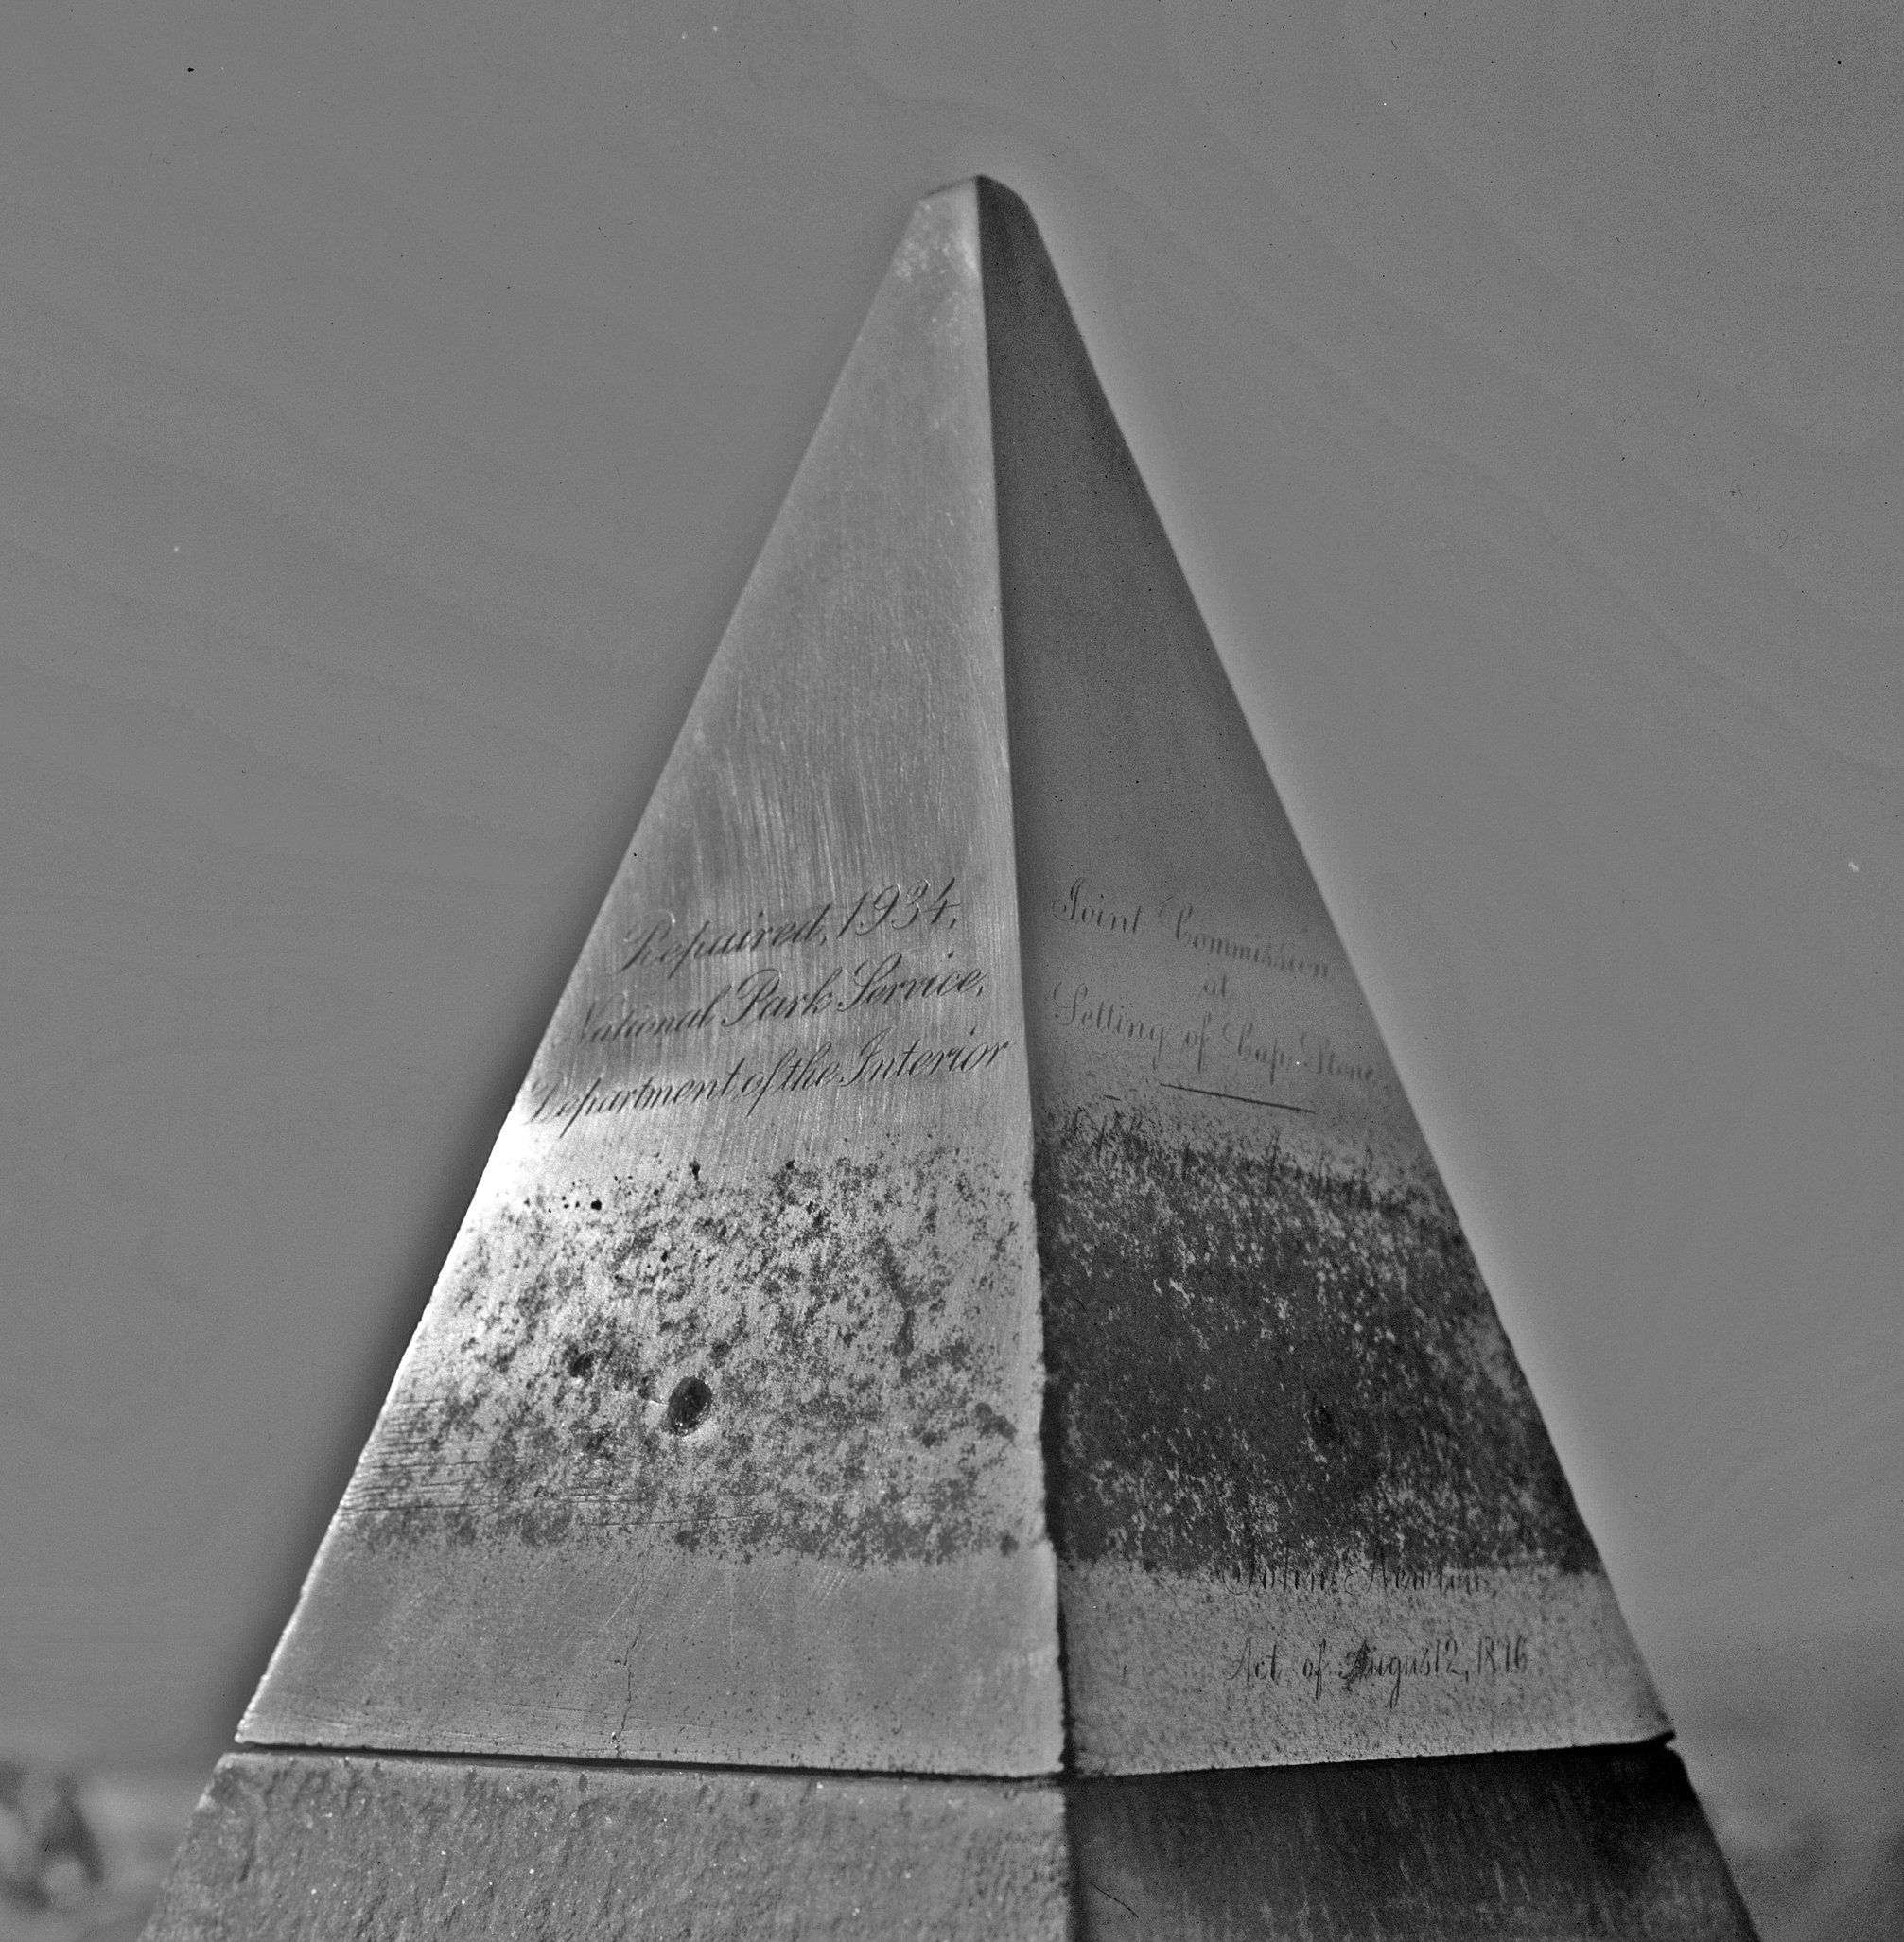 Aluminum apex showing inscriptions on east and north faces. Large dark spot in the center of the mottled area on the east (left) face is a dimple left by one of four set screws that used to hold the copper band to the apex.